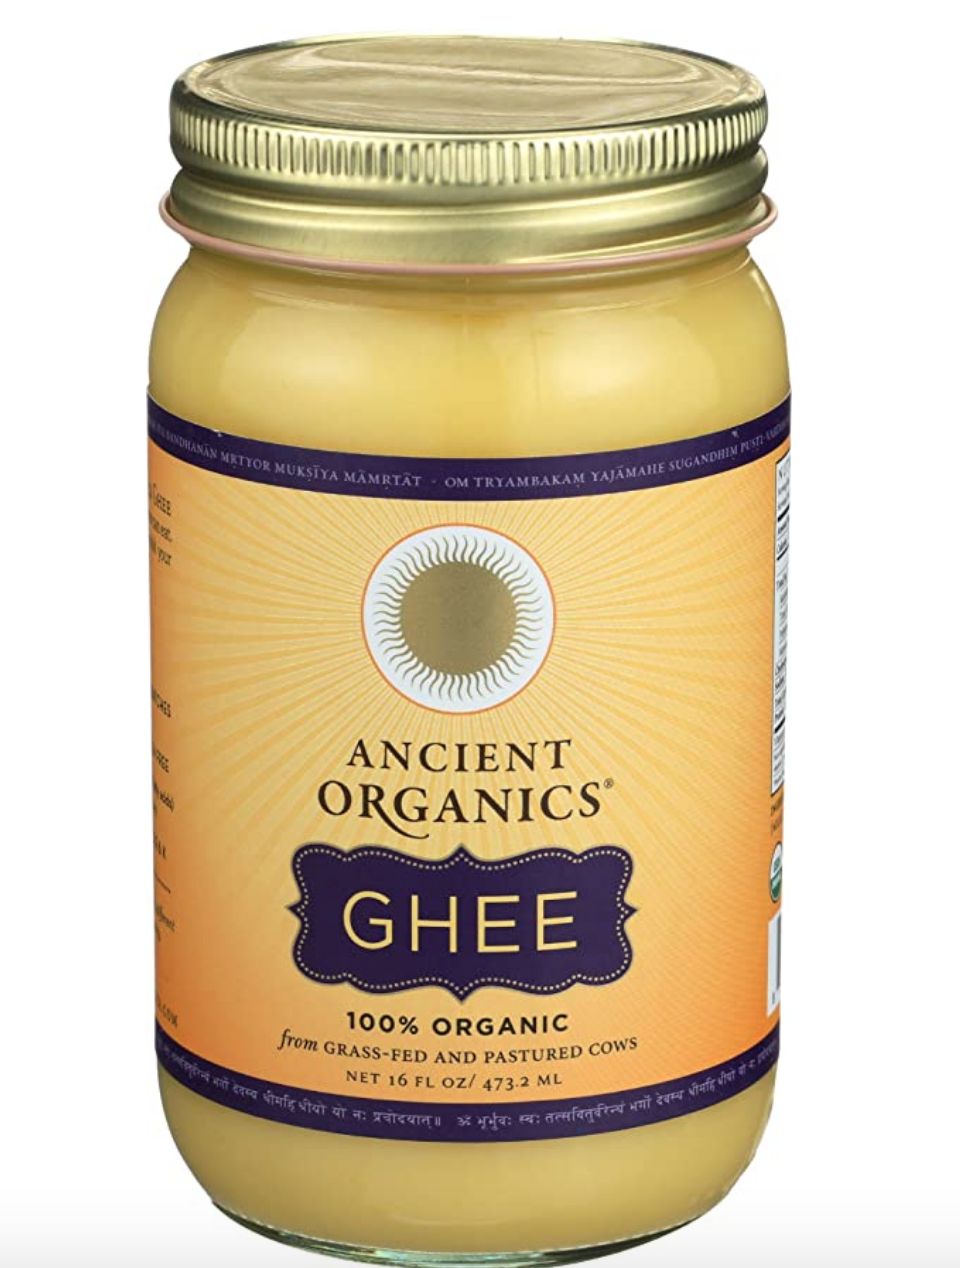 """<p><a class=""""link rapid-noclick-resp"""" href=""""https://www.amazon.com/ANCIENT-ORGANICS-100-Organic-Grass-fed/dp/B00DUFYQYS?ref_=ast_sto_dp&tag=syn-yahoo-20&ascsubtag=%5Bartid%7C10049.g.36302562%5Bsrc%7Cyahoo-us"""" rel=""""nofollow noopener"""" target=""""_blank"""" data-ylk=""""slk:BUY NOW"""">BUY NOW</a></p><p>A super niche product, but one that certain people would die for. Whole Foods has been on the <a href=""""https://www.instacart.com/whole-foods/products/174608-ancient-organics-ghee-8-fl-oz"""" rel=""""nofollow noopener"""" target=""""_blank"""" data-ylk=""""slk:ghee"""" class=""""link rapid-noclick-resp"""">ghee</a> beat for awhile now.</p>"""